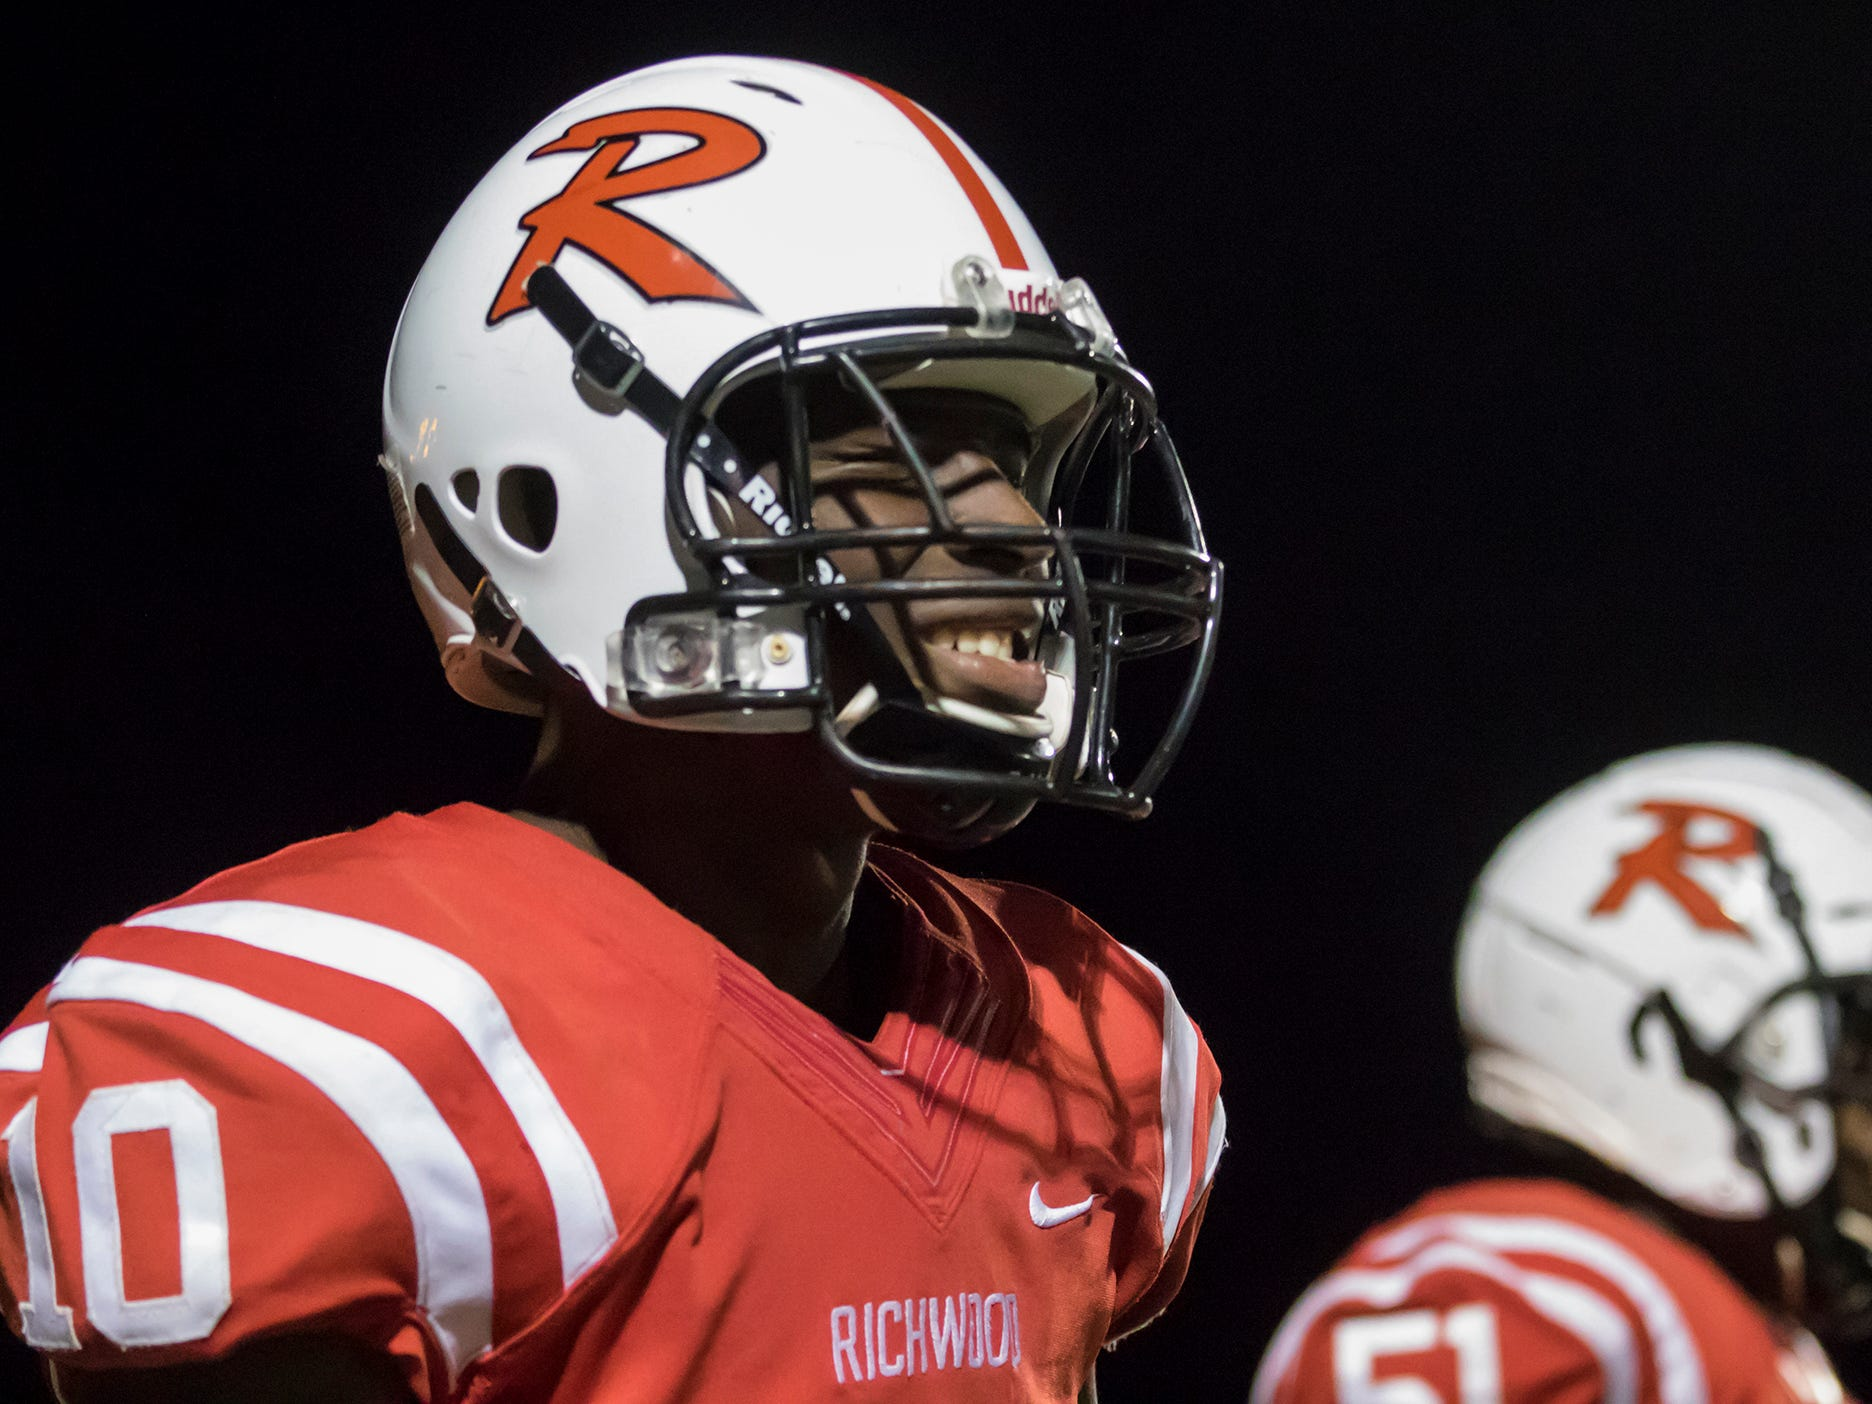 Richwood beat Carroll 24-23 in a thrilling back and forth game at Richwood High School in Richwood, La. on Oct. 11.